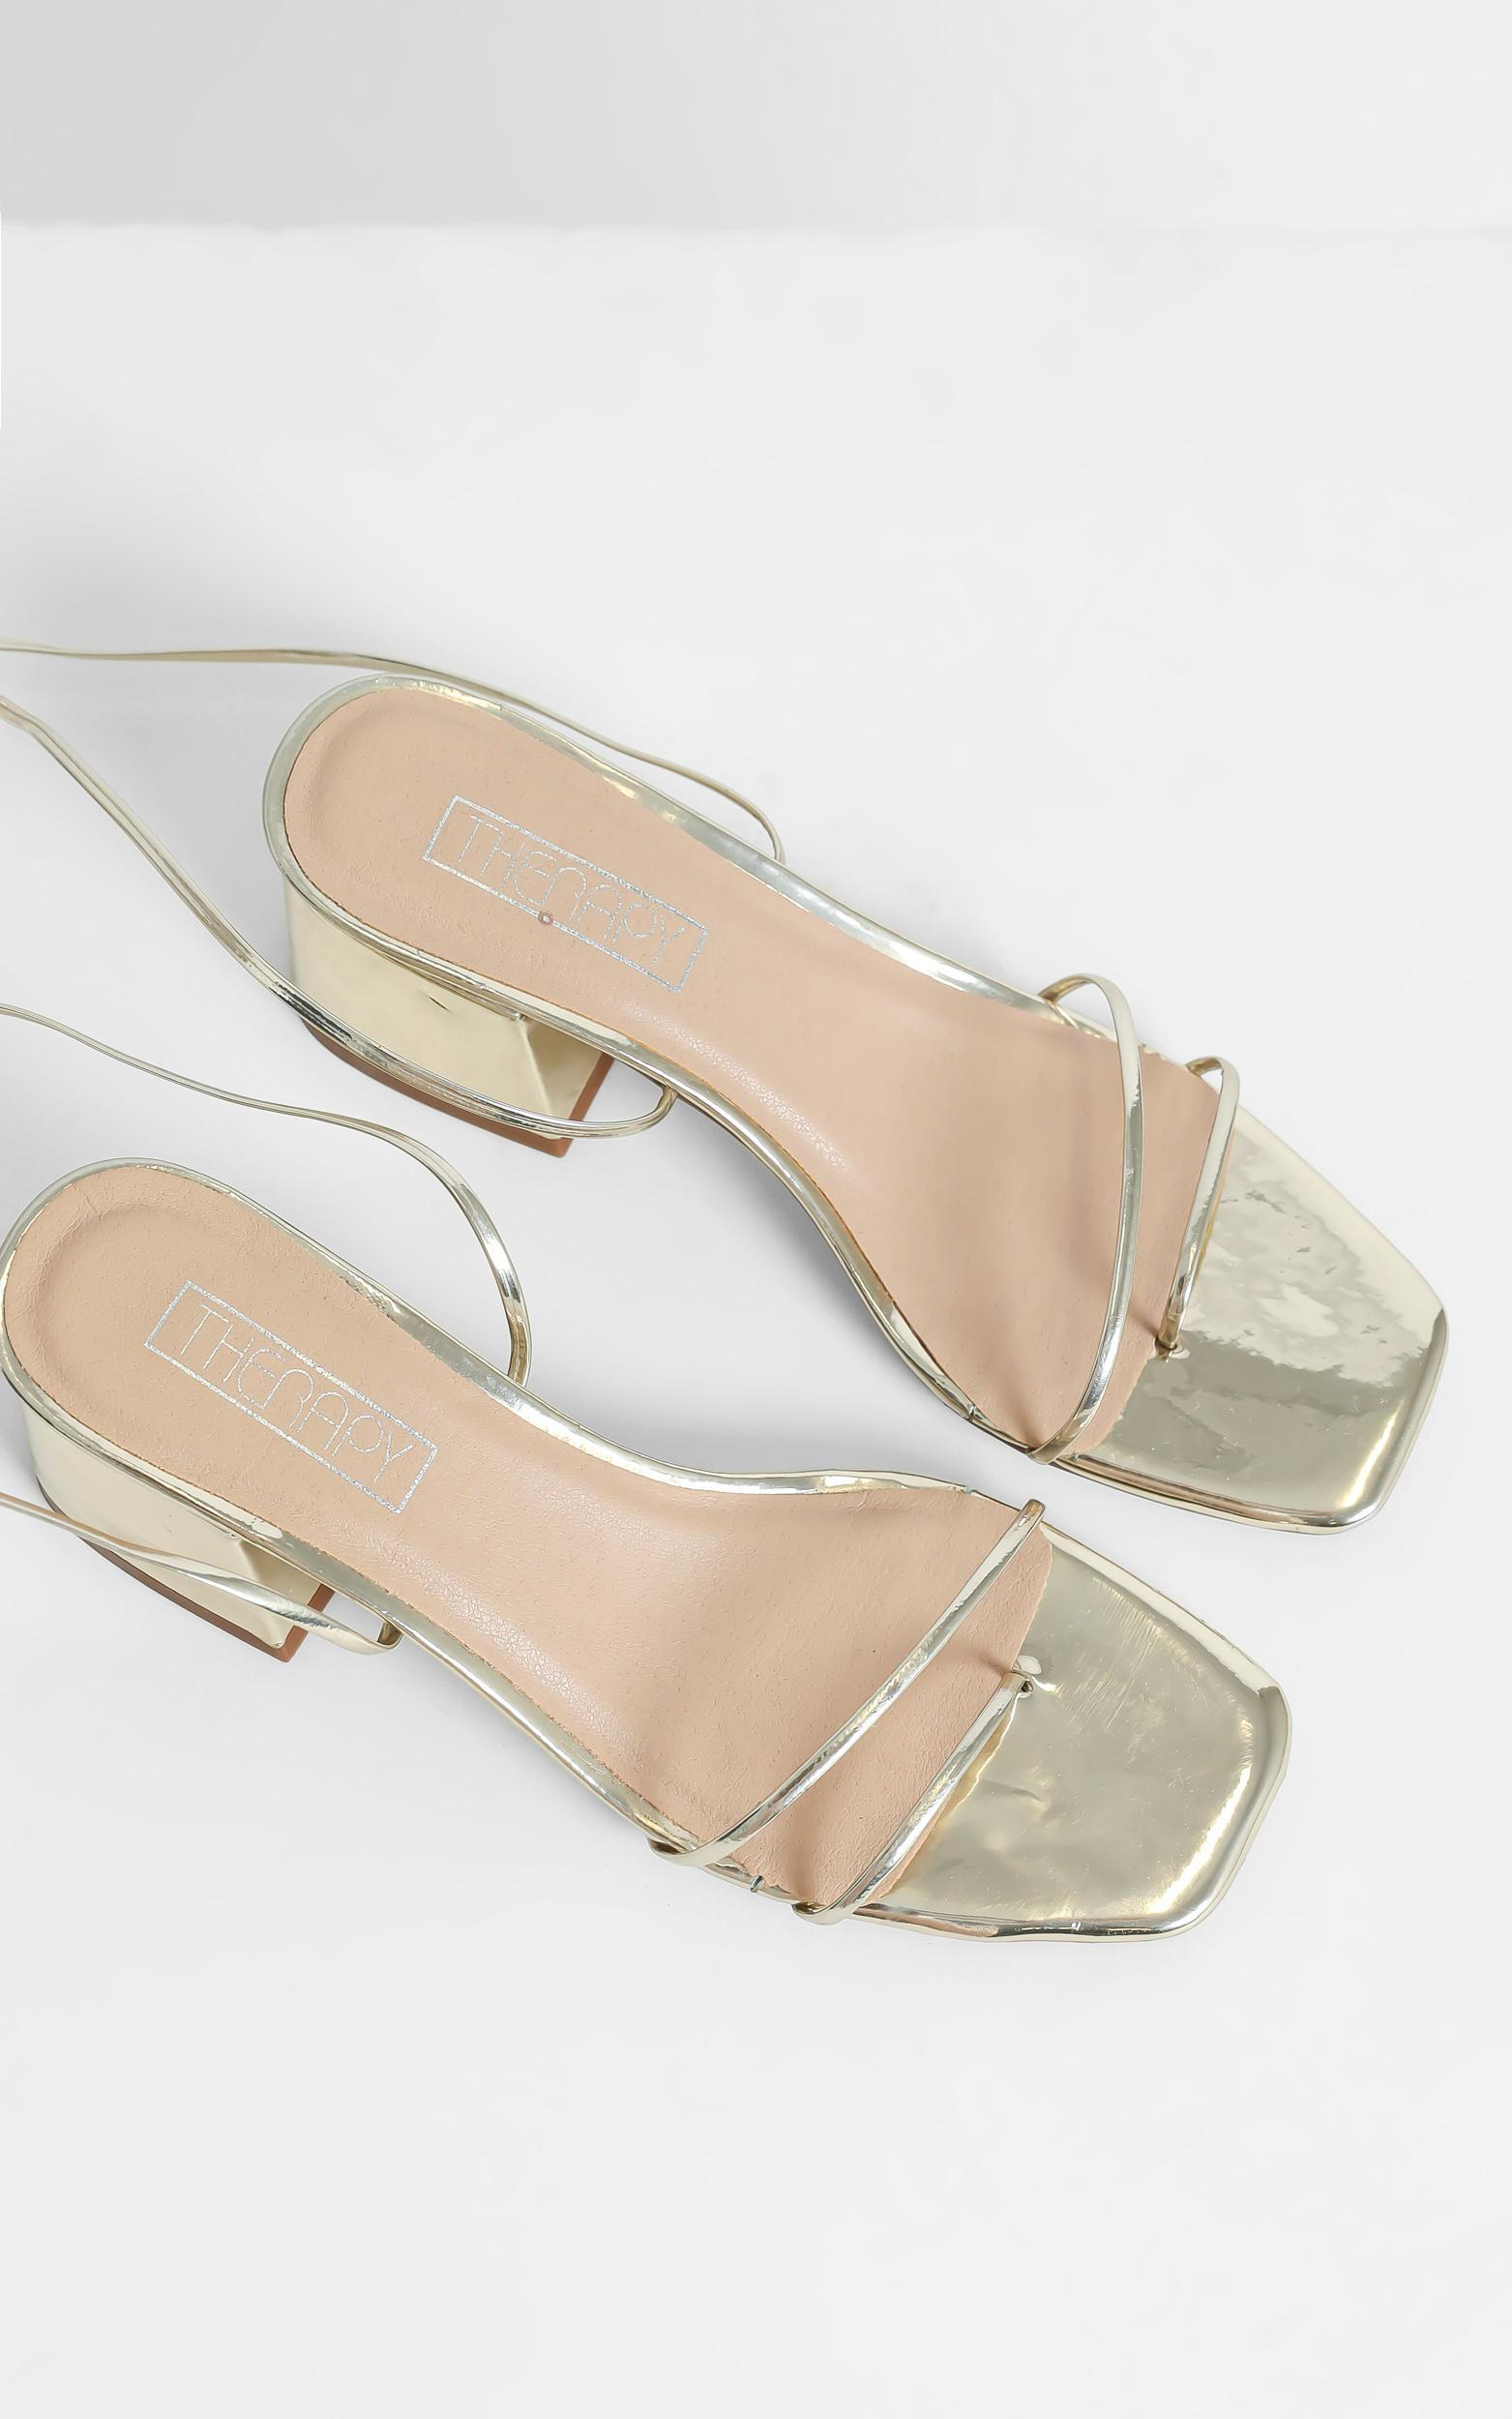 Therapy - Juniper Heels in Gold - 5, Gold, hi-res image number null